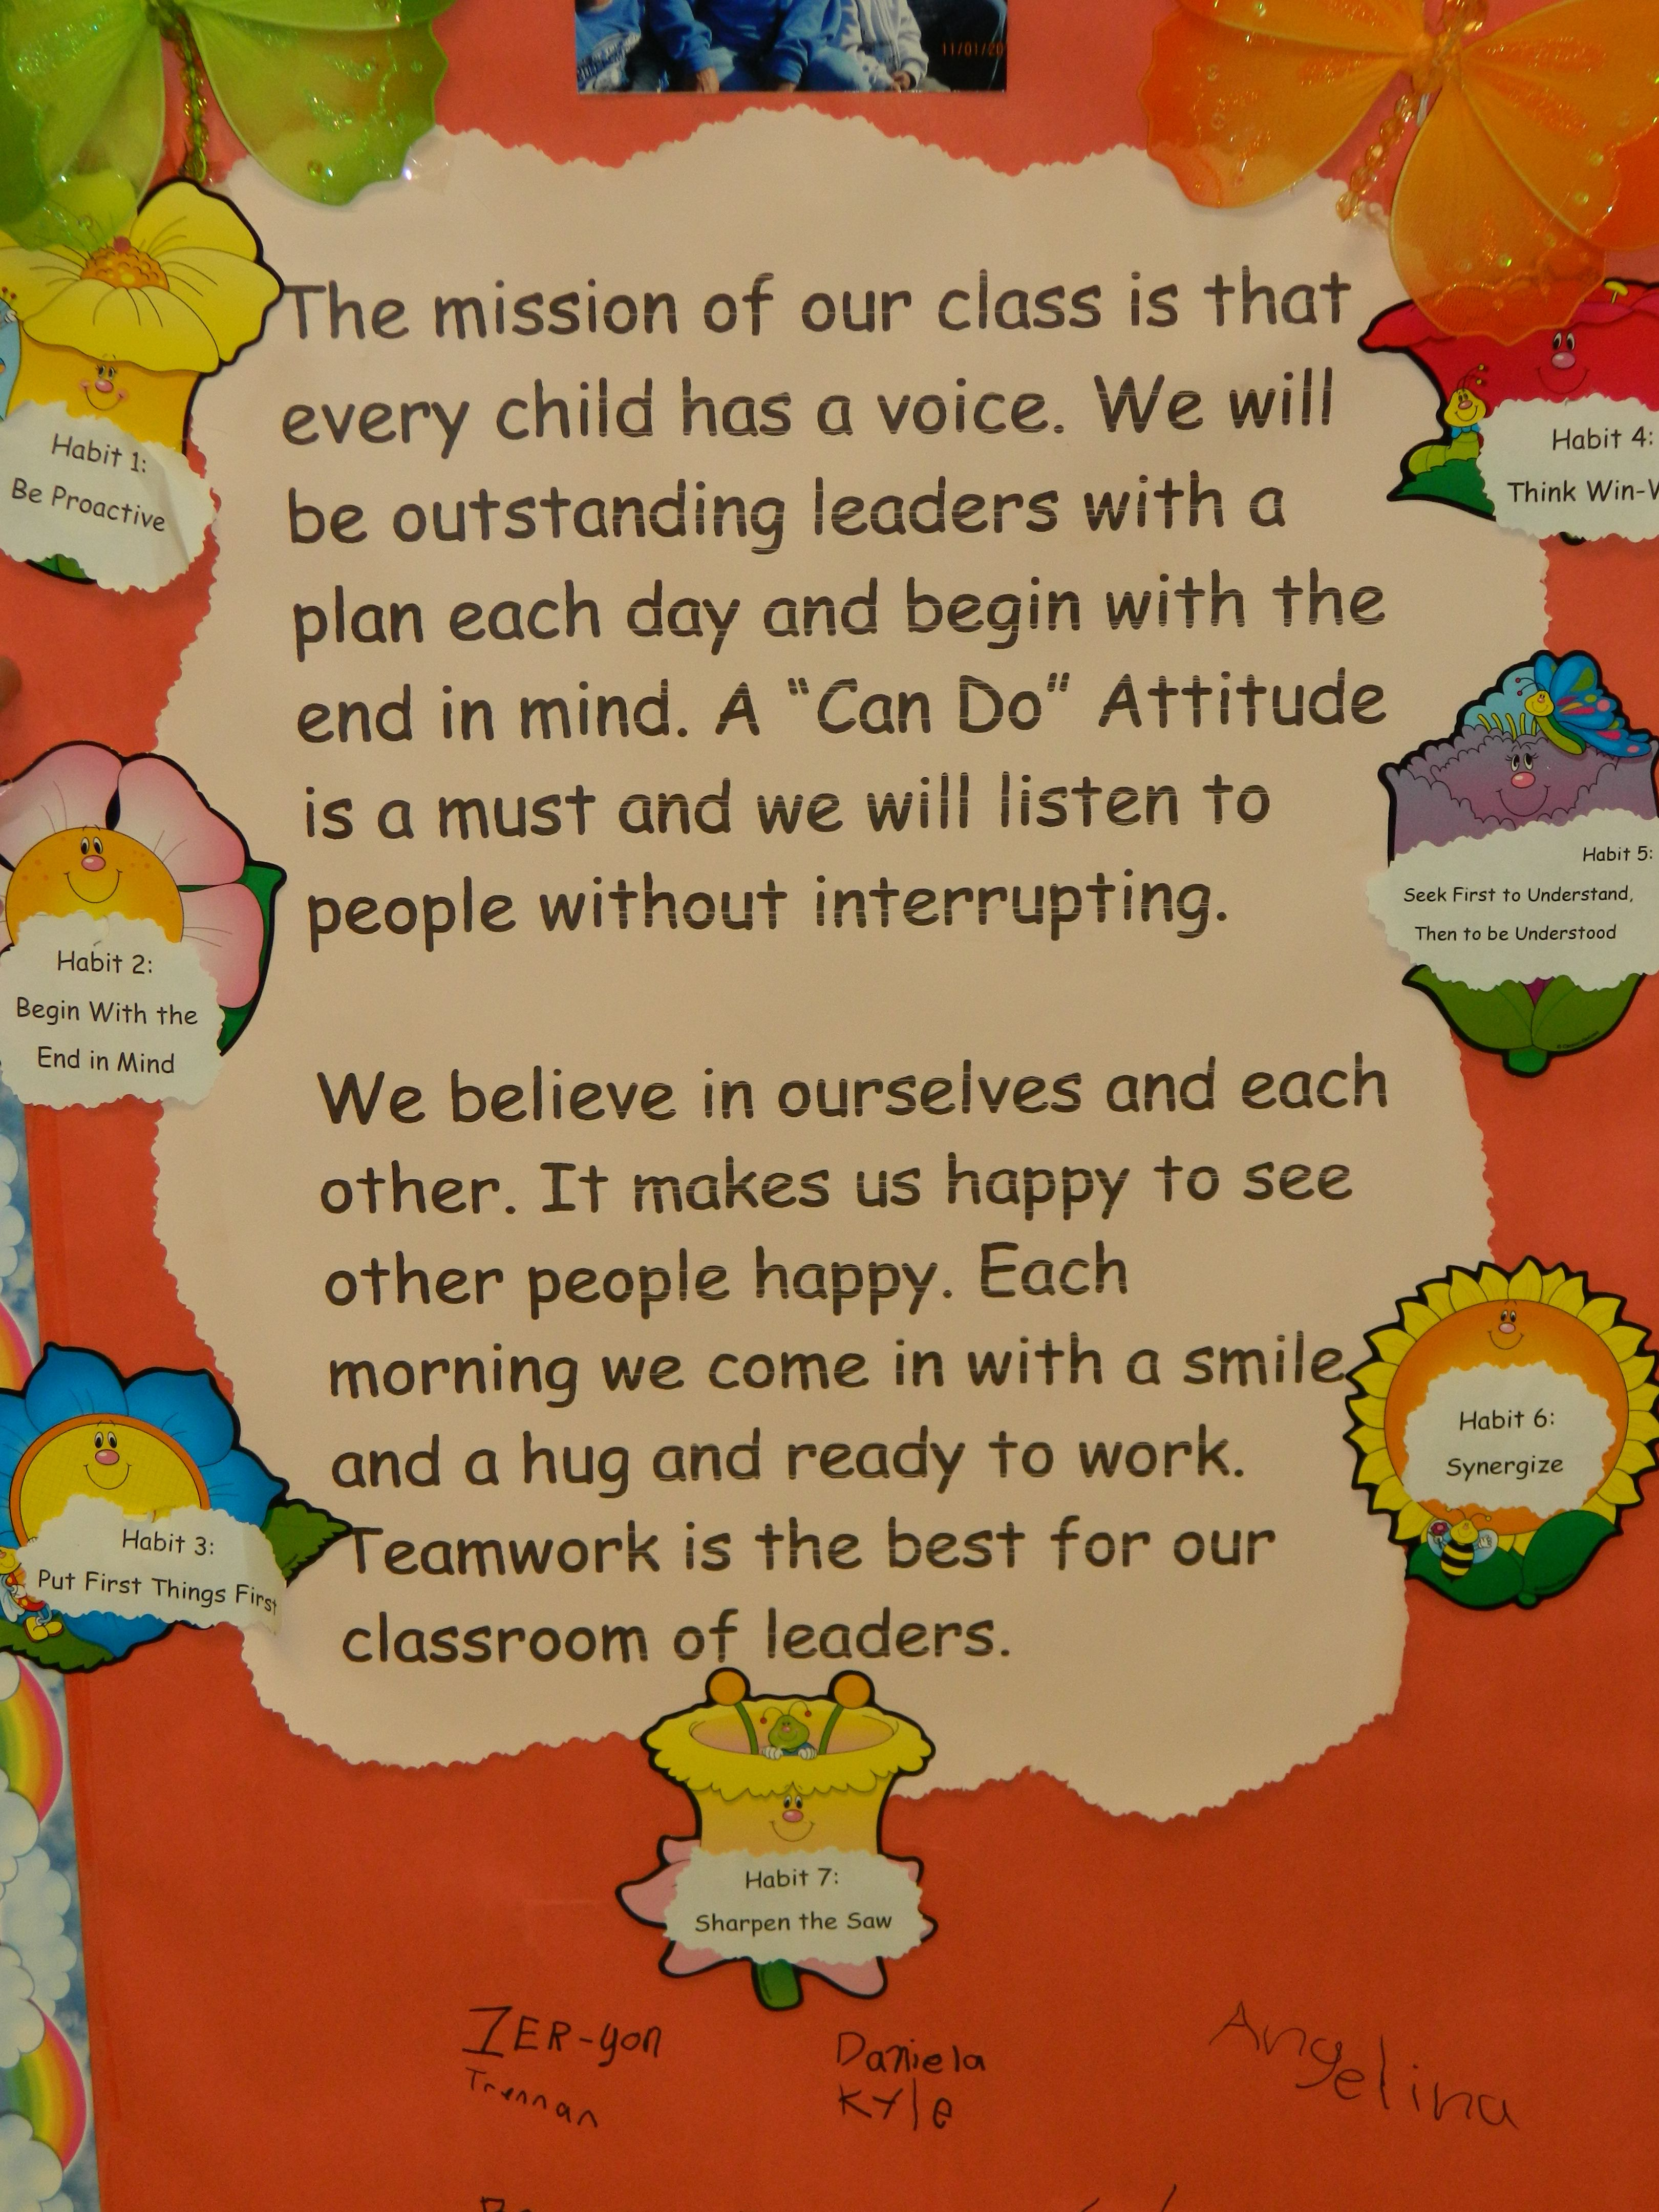 Classroom Mission Statement That Includes The Leadership